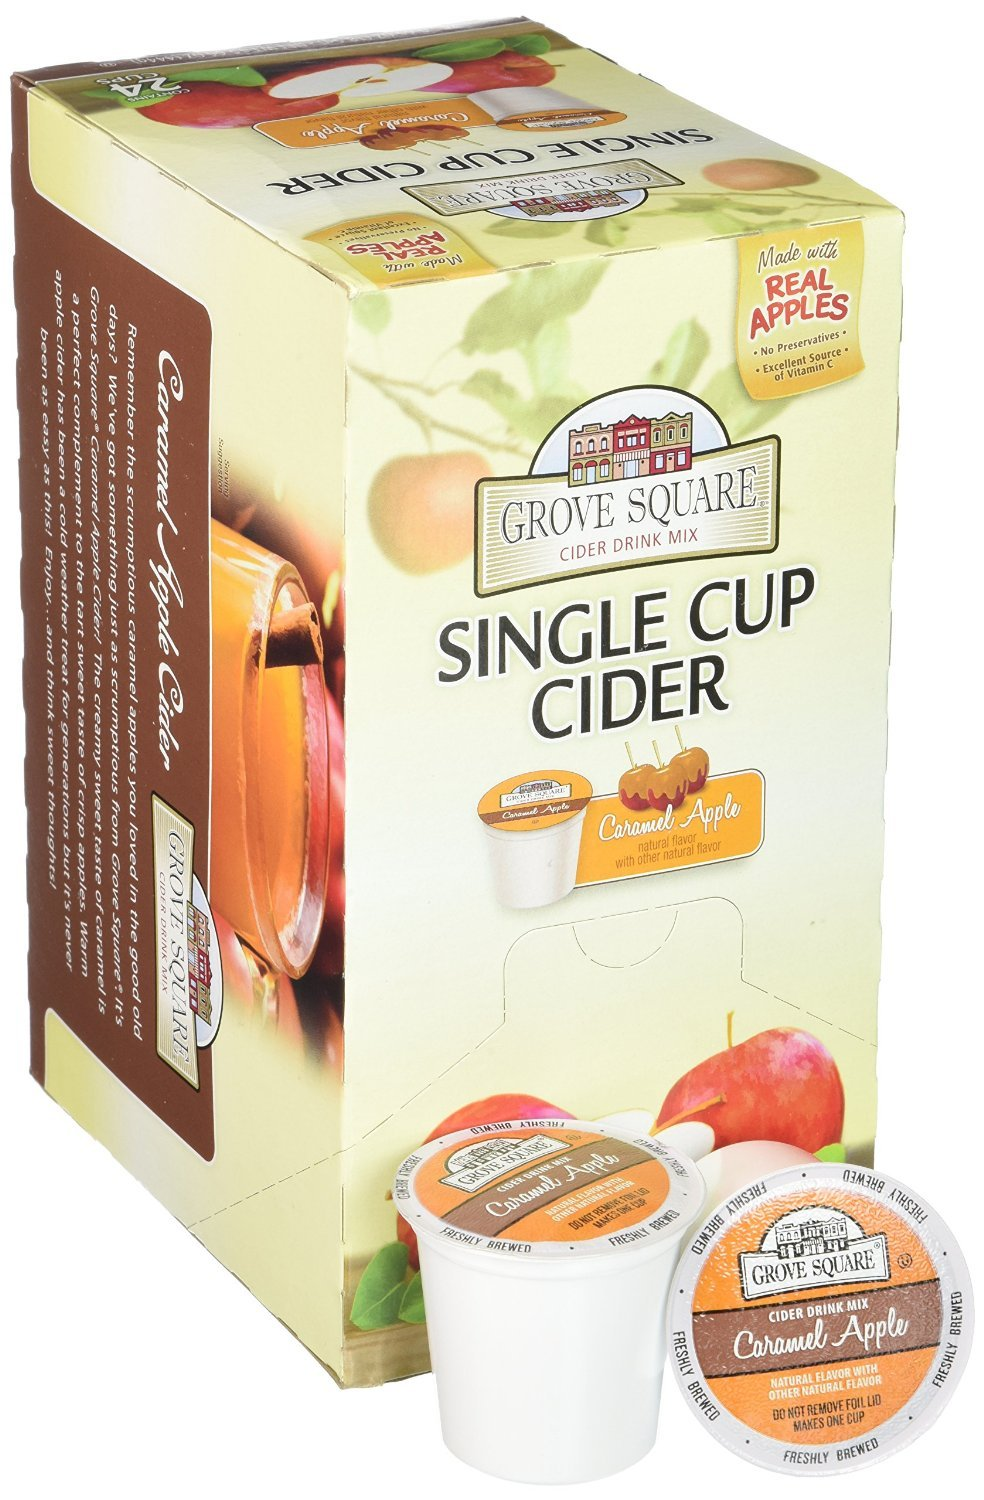 Grove Square Cider Cups, Caramel Apple, Single Serve Cup for Keurig K-Cup Brewers, 24-Count (Pack of 2)